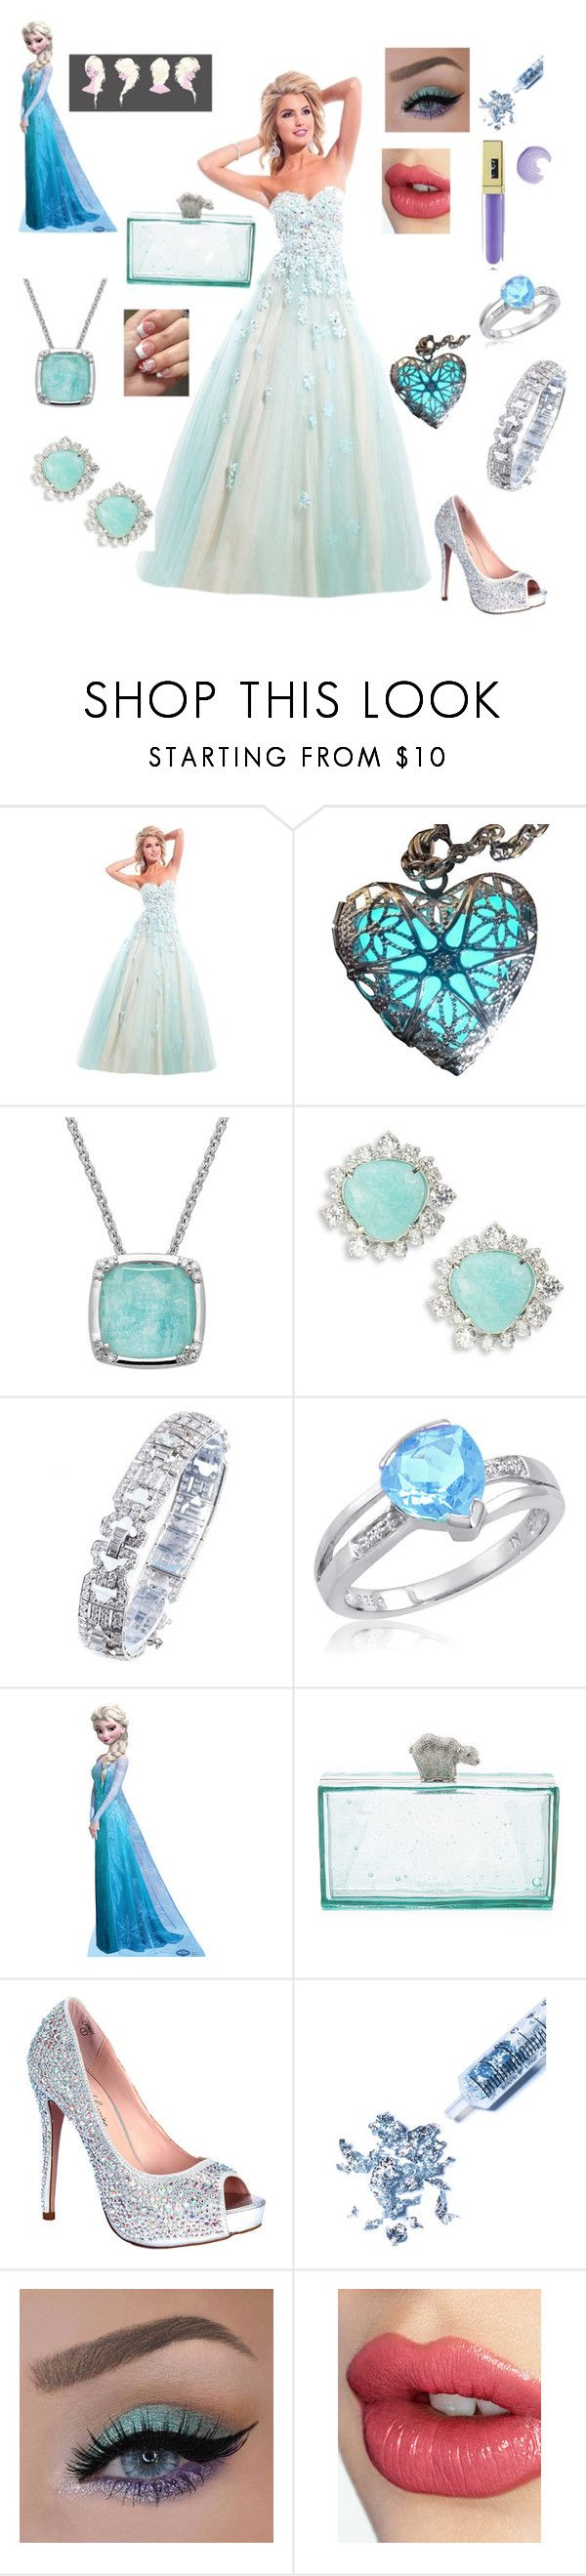 """""""Prom Elsa"""" by ejmfashionista ❤ liked on Polyvore featuring Rachel Allan, Lord & Taylor, Nadri, Amanda Rose Collection, Kate Spade, Lauren Lorraine, Glitter Injections, Charlotte Tilbury and Gerard Cosmetics"""